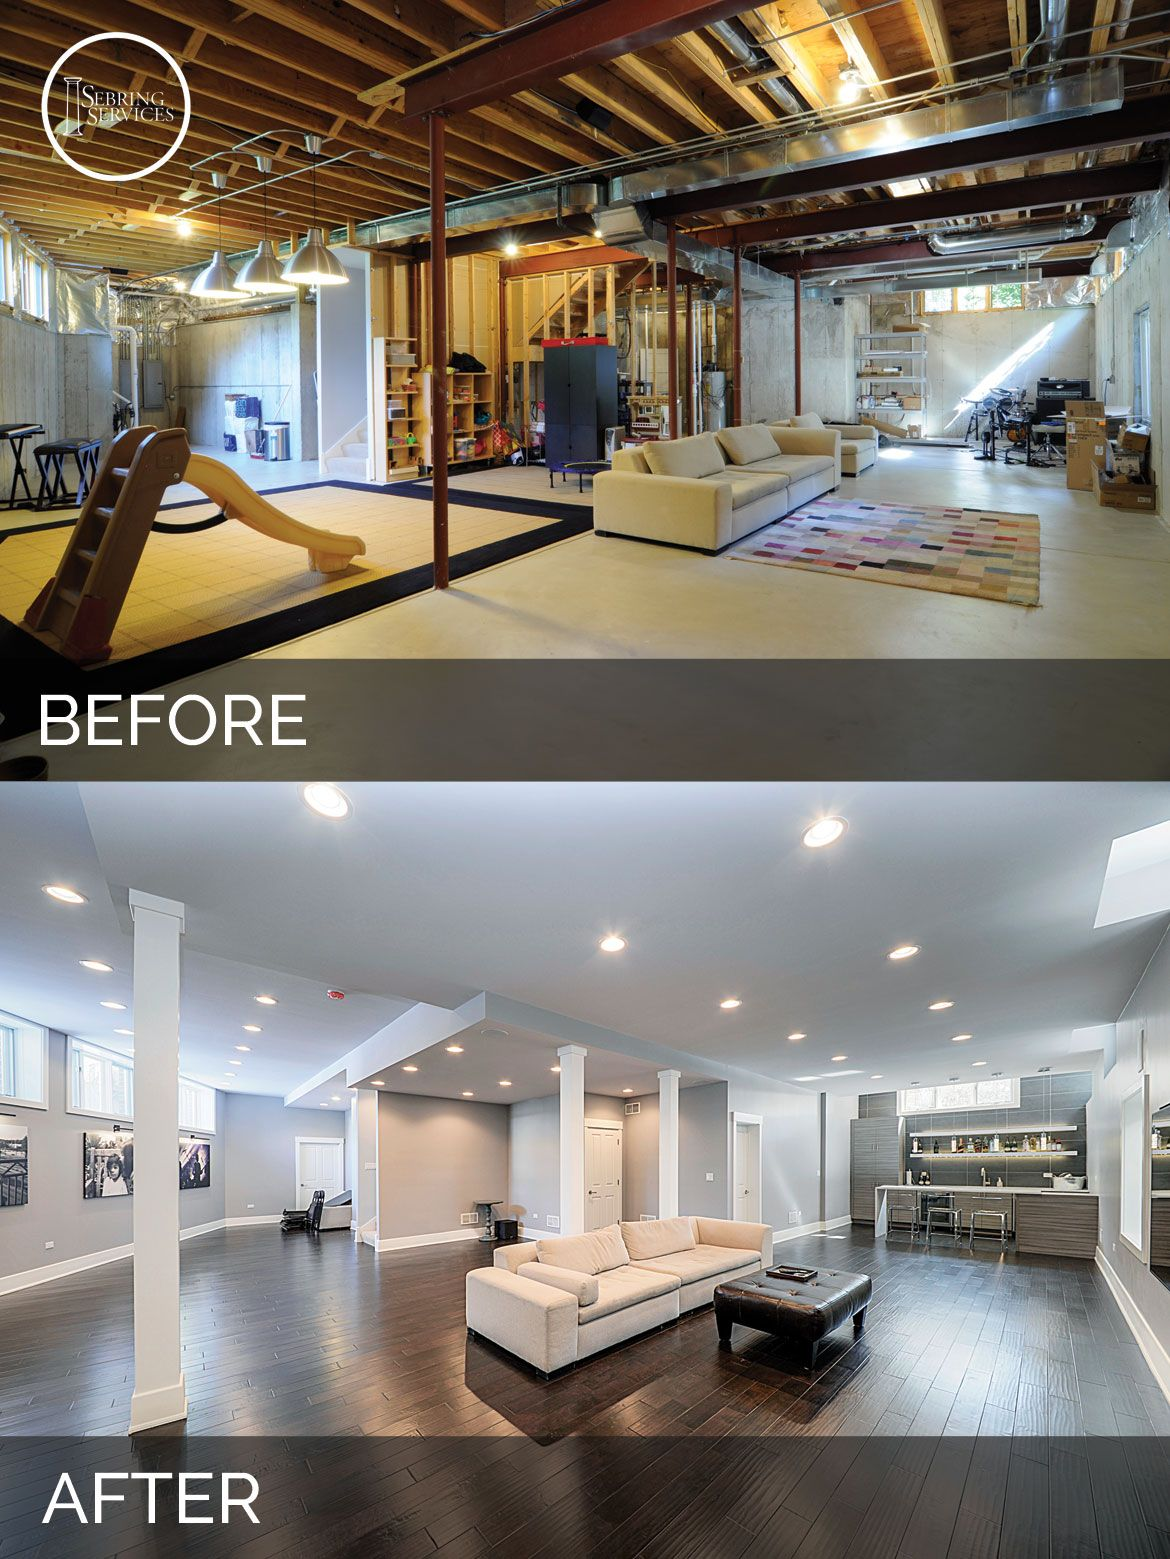 Before And After Basement Remodeling 791 Sebring Services Jpg 1 170